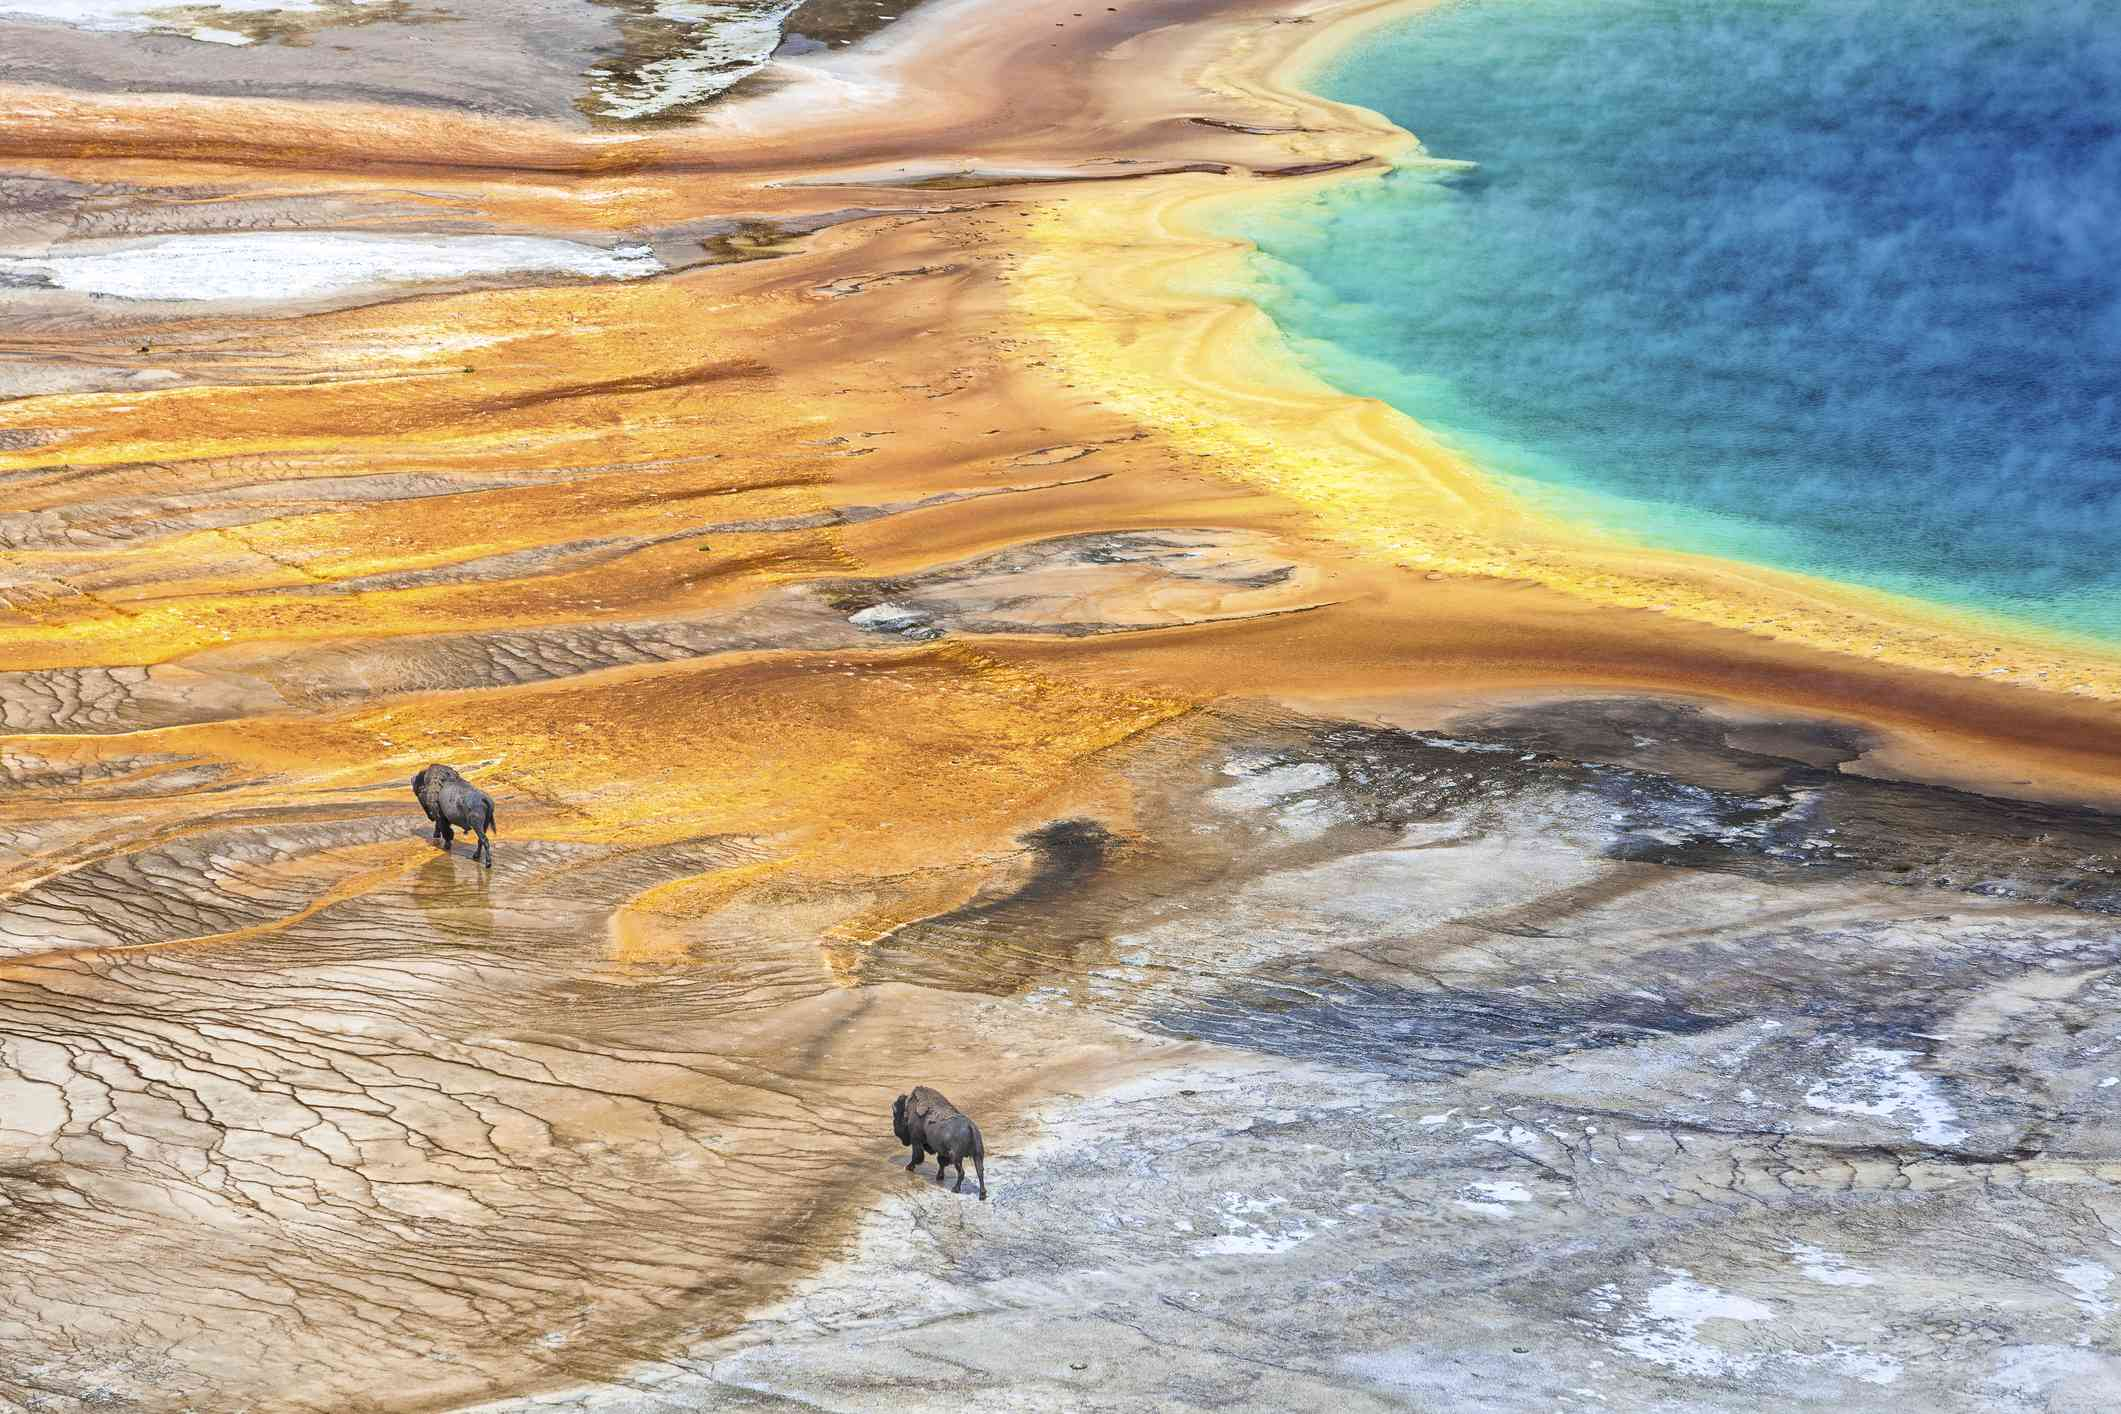 Grand Prismatic Geyser with American Bison passing by, Yellowstone National Park